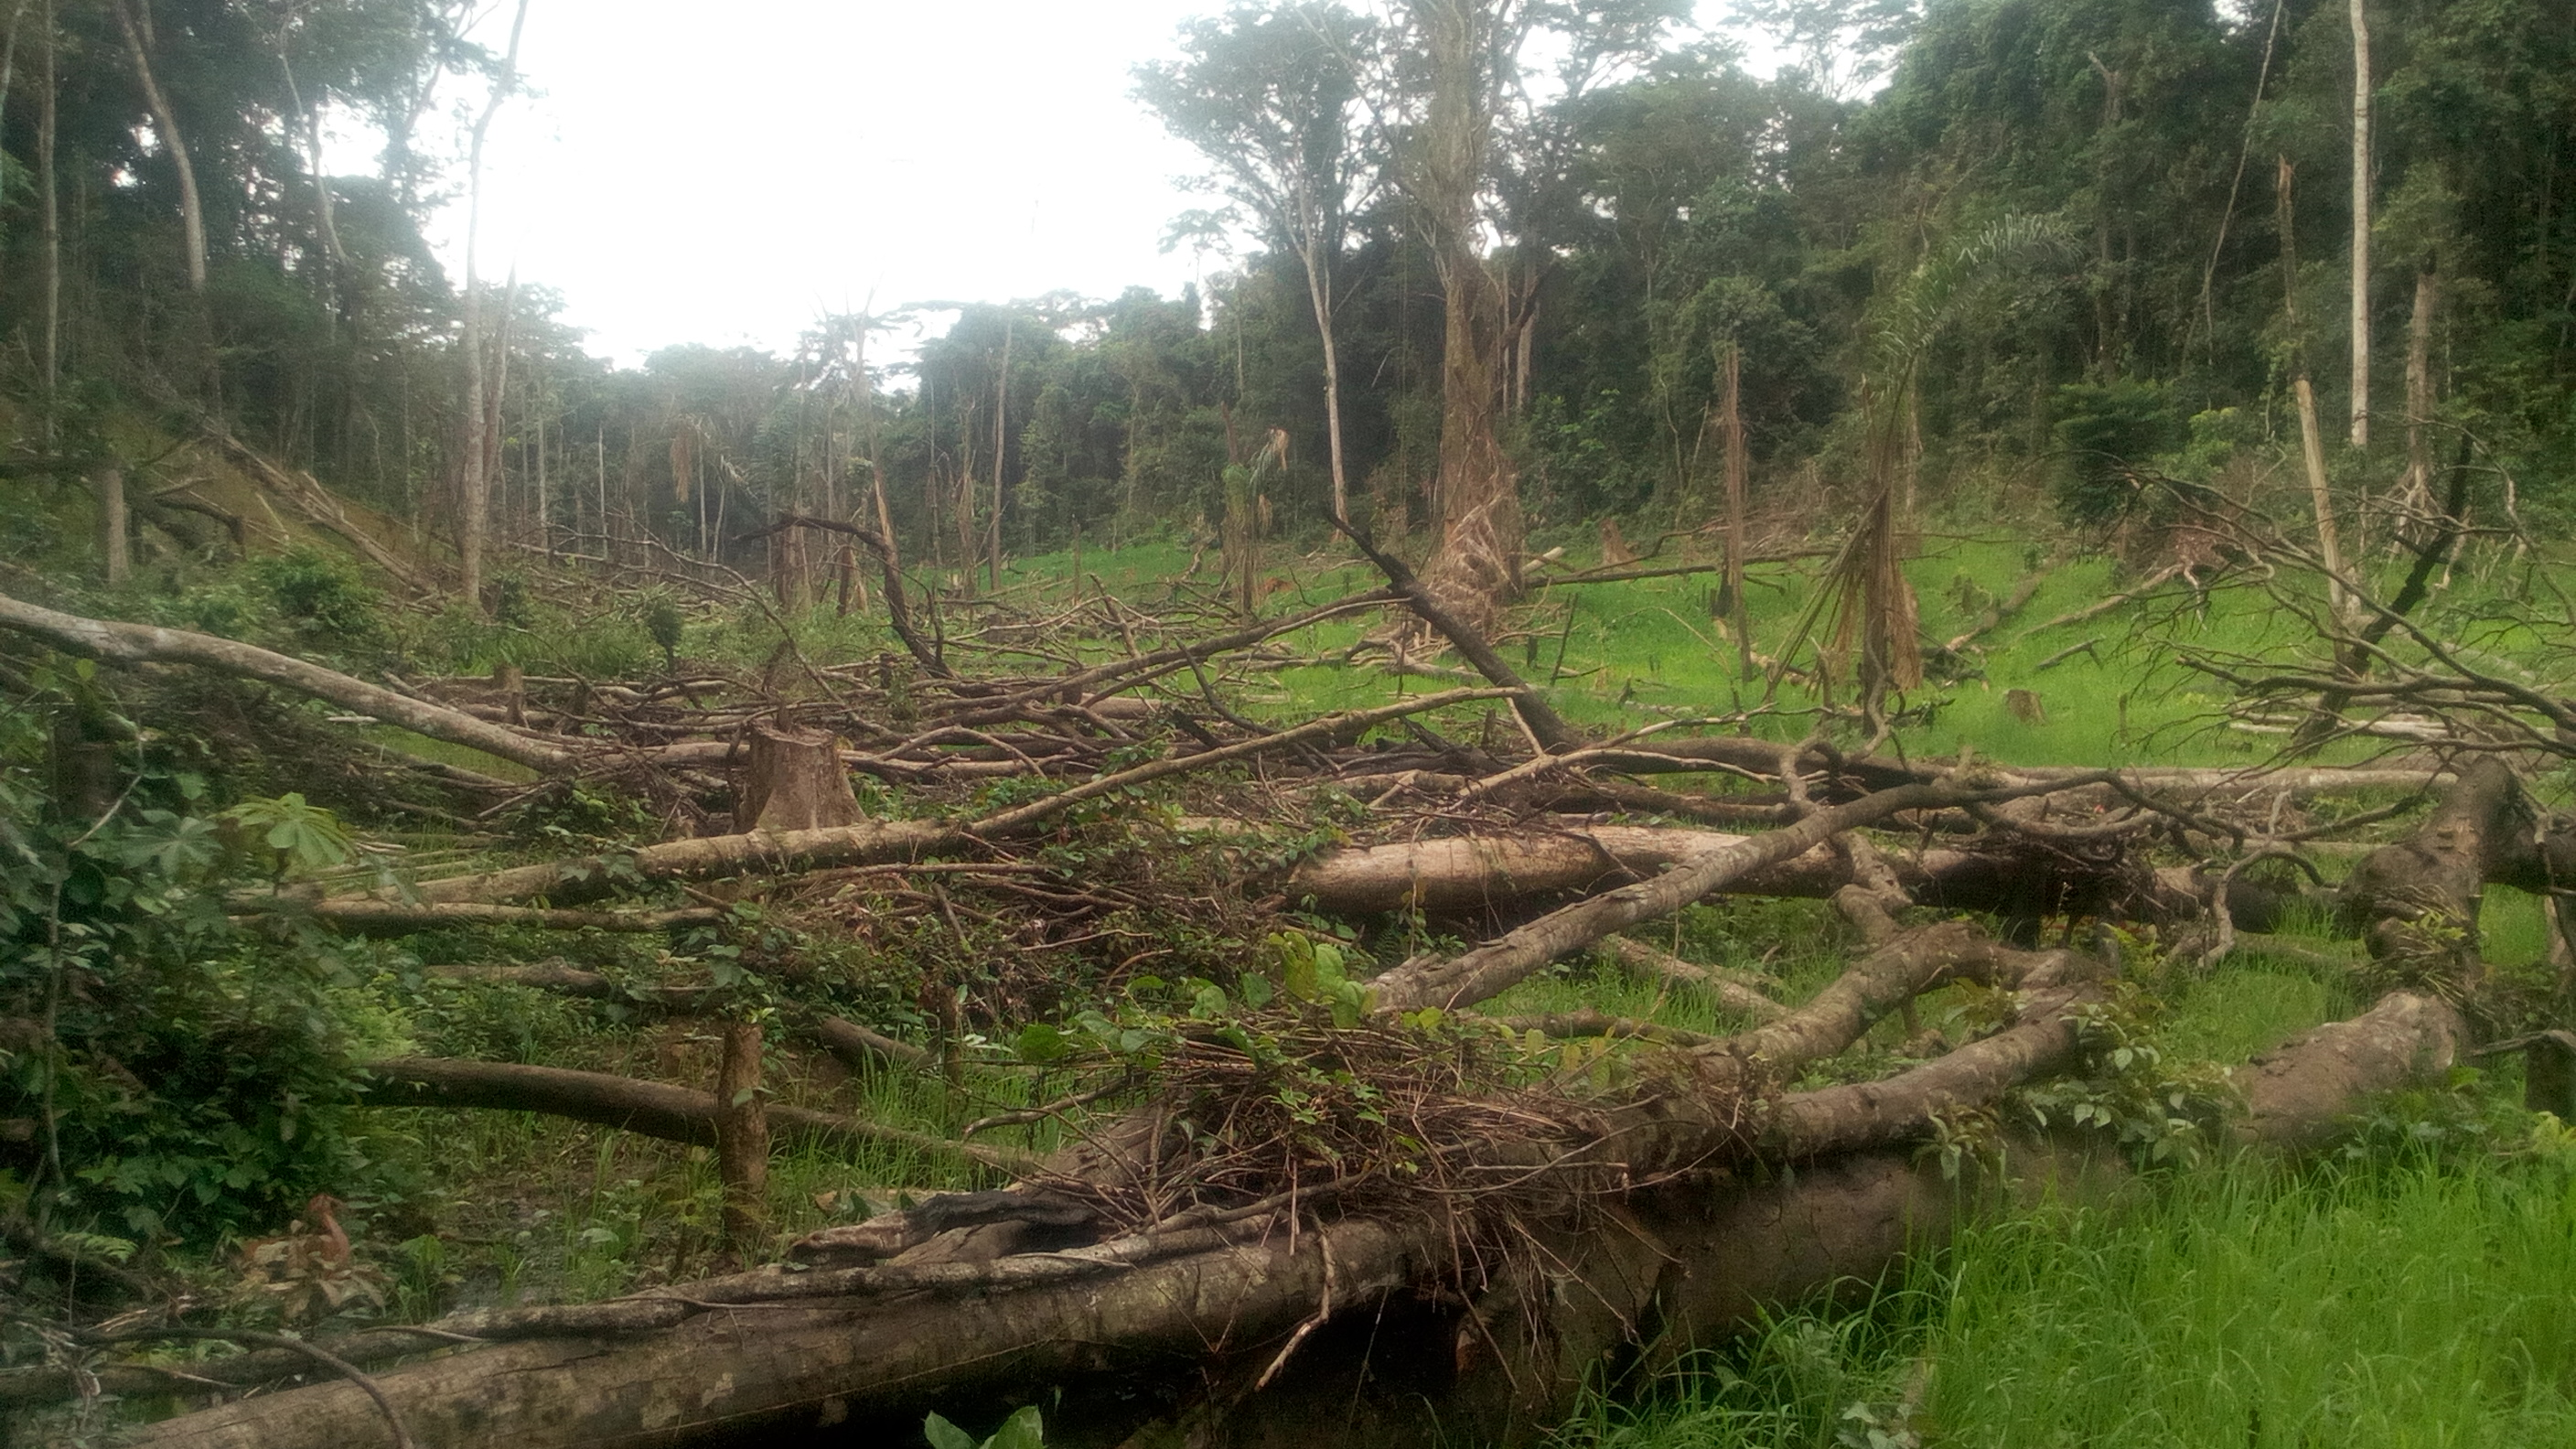 Illegal tree cutting for agriculture. Photo: ©Pépé Haba